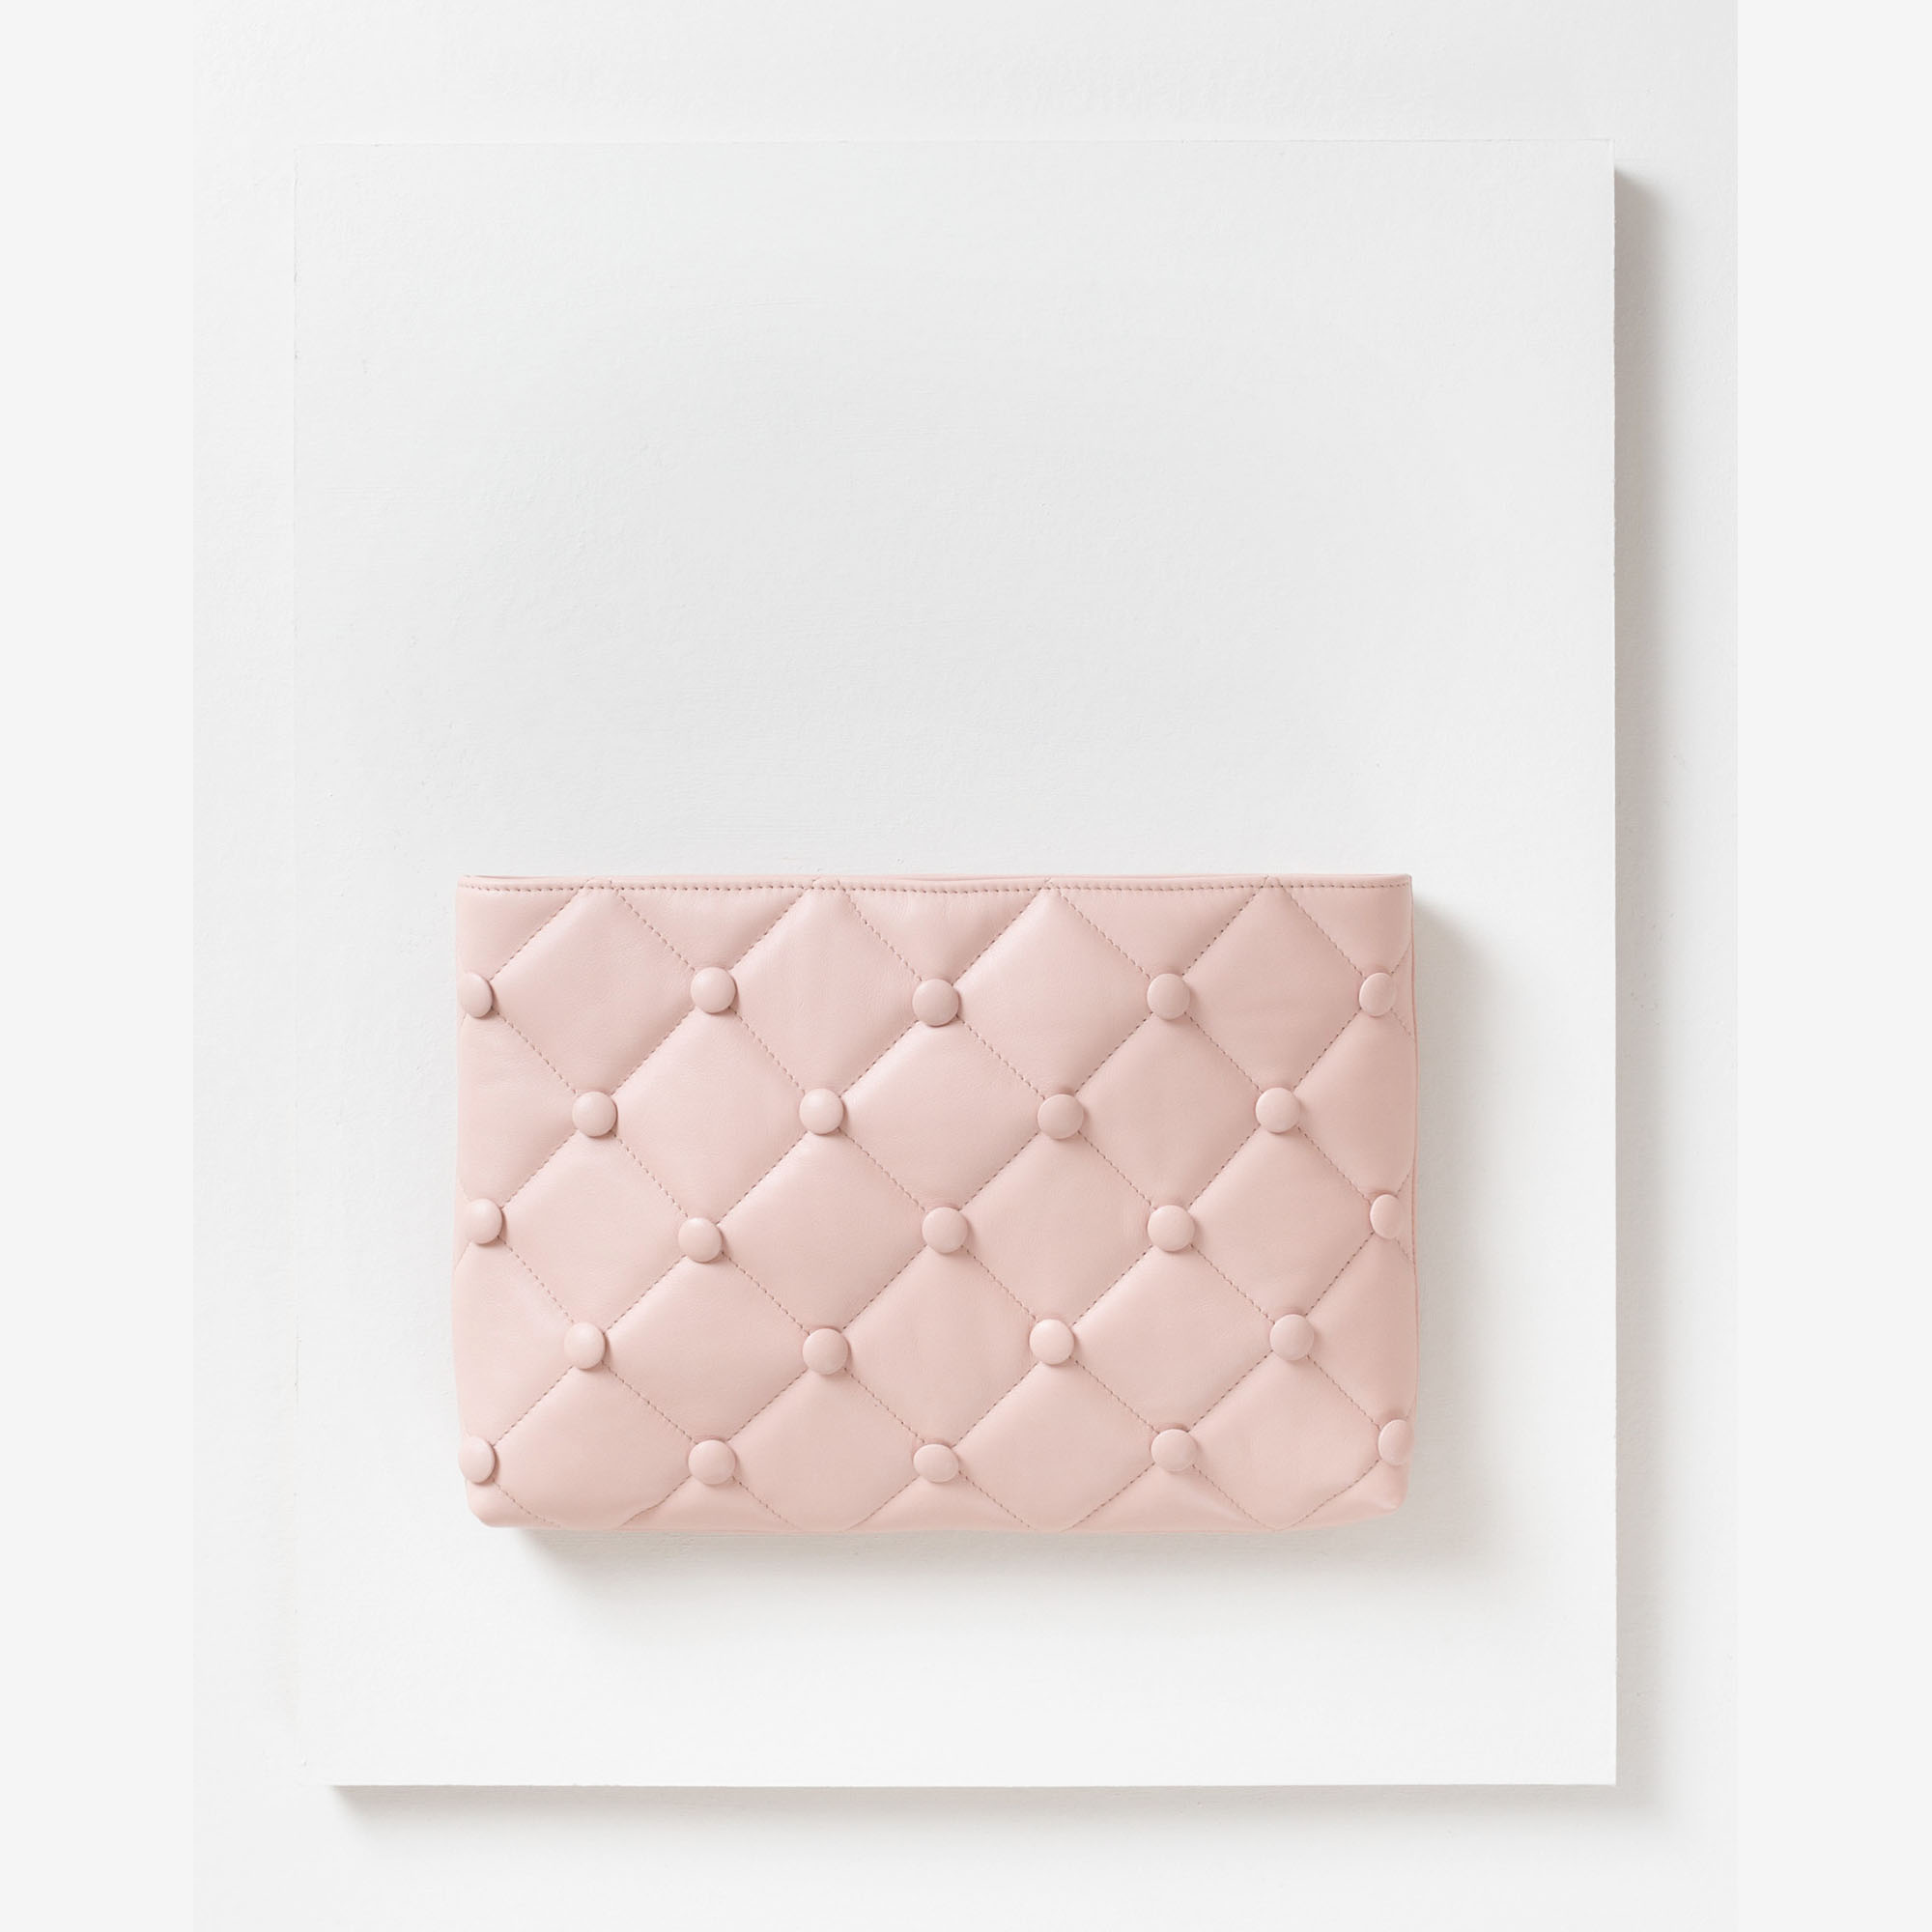 Laimushka nude leather quilted oversized clutch bag